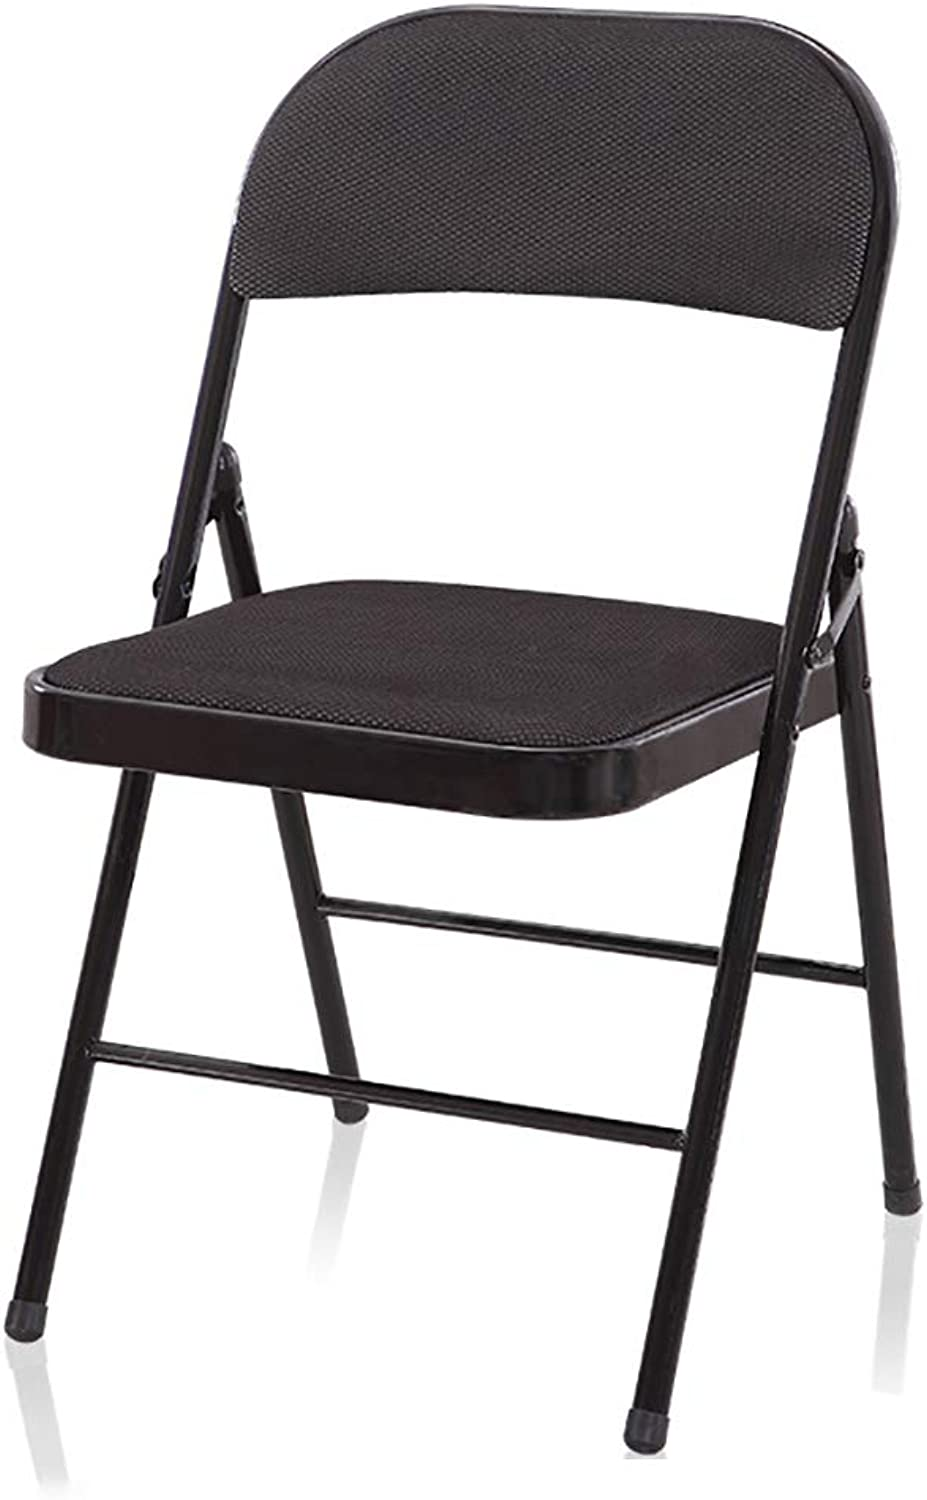 XHLZDY Folding Chair, Leisure Chair, Home Folding Chair, Dormitory Back Chair, Office Chair, Staff Chair (44×47×77cm) (color   A)